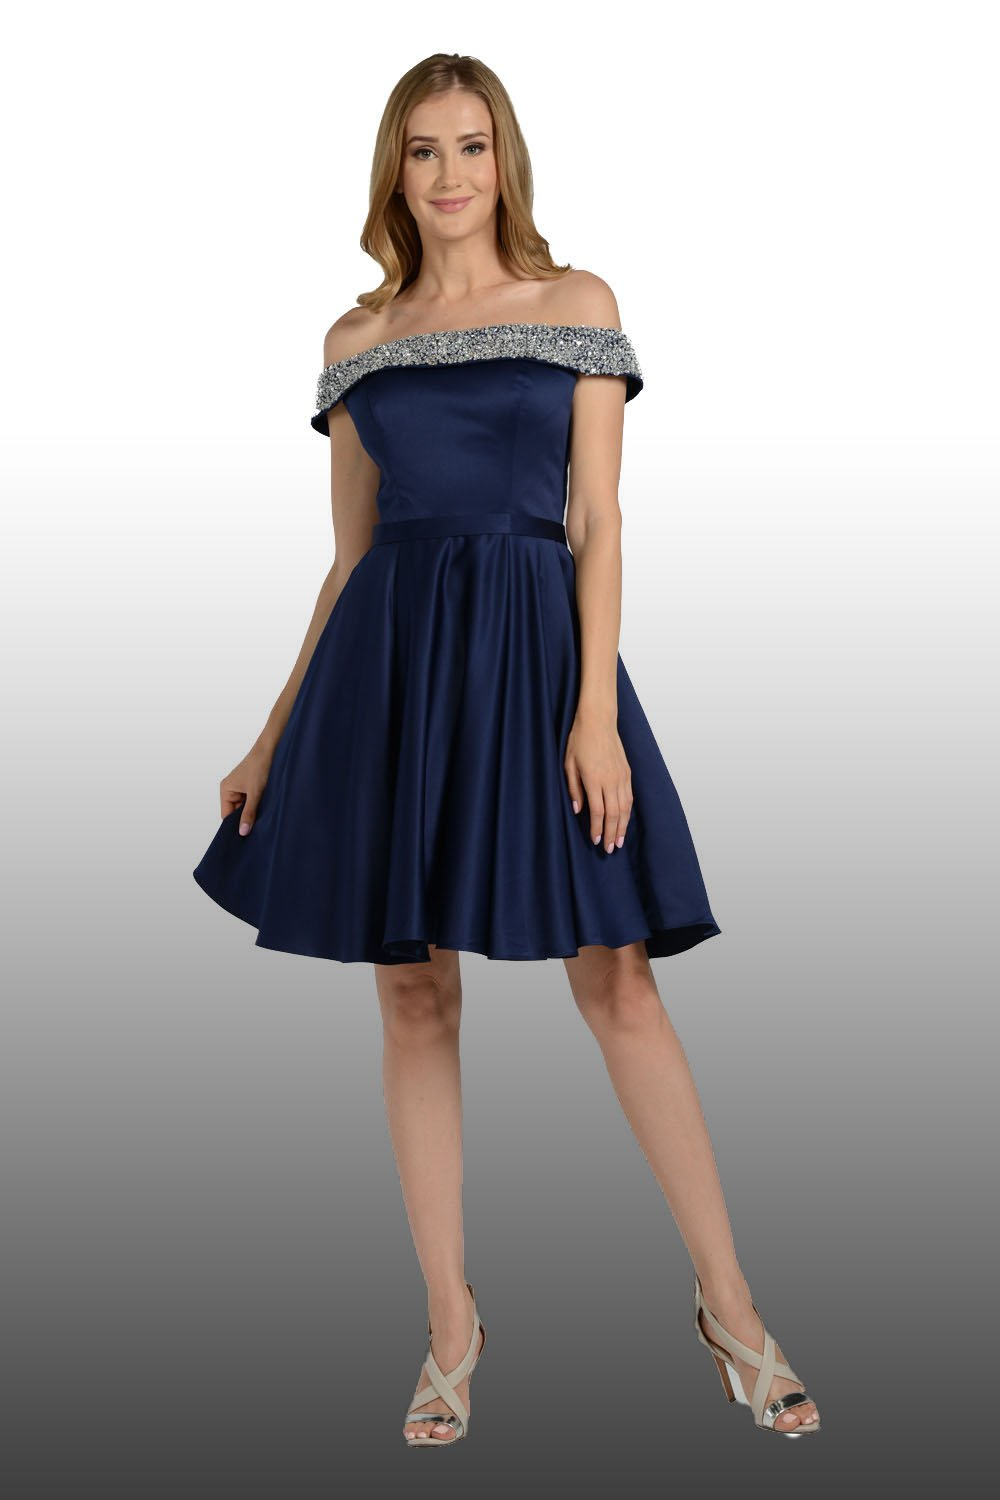 Navy Of The Shoulder Homecoming Dress With Bling Bling Neckline